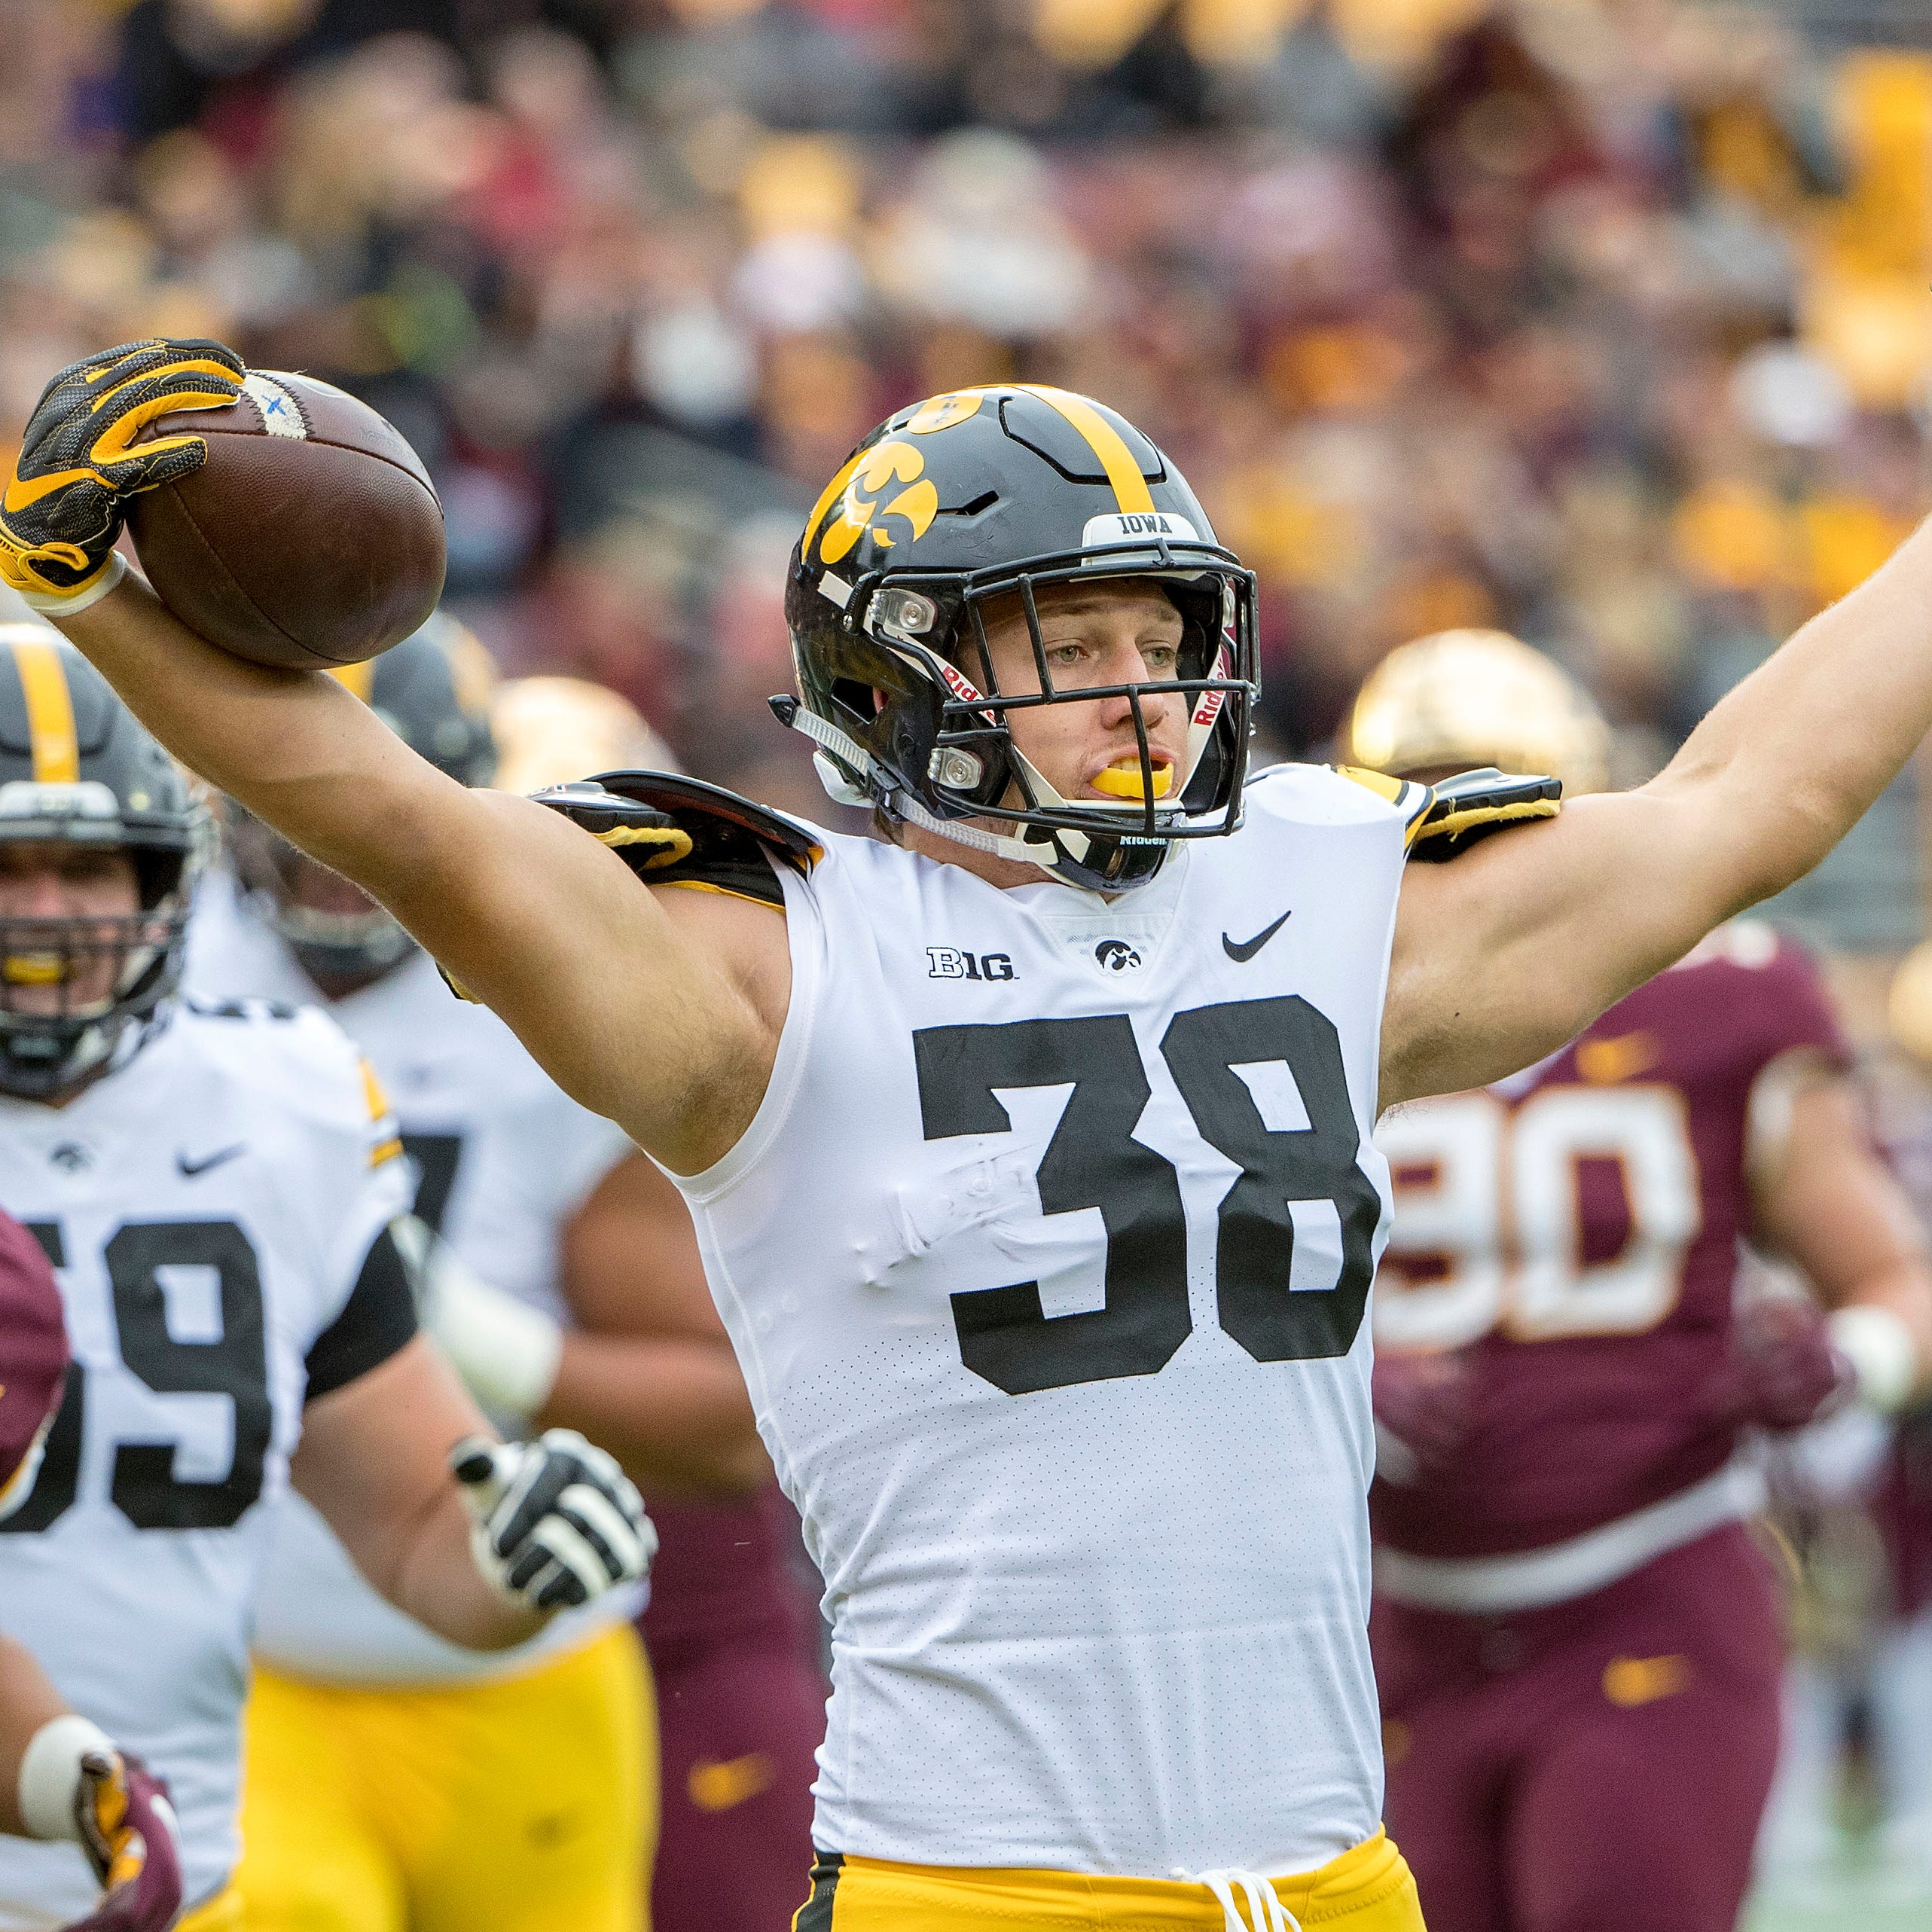 Iowa TE T.J. Hockenson has hometown — and several teams — excited for NFL draft